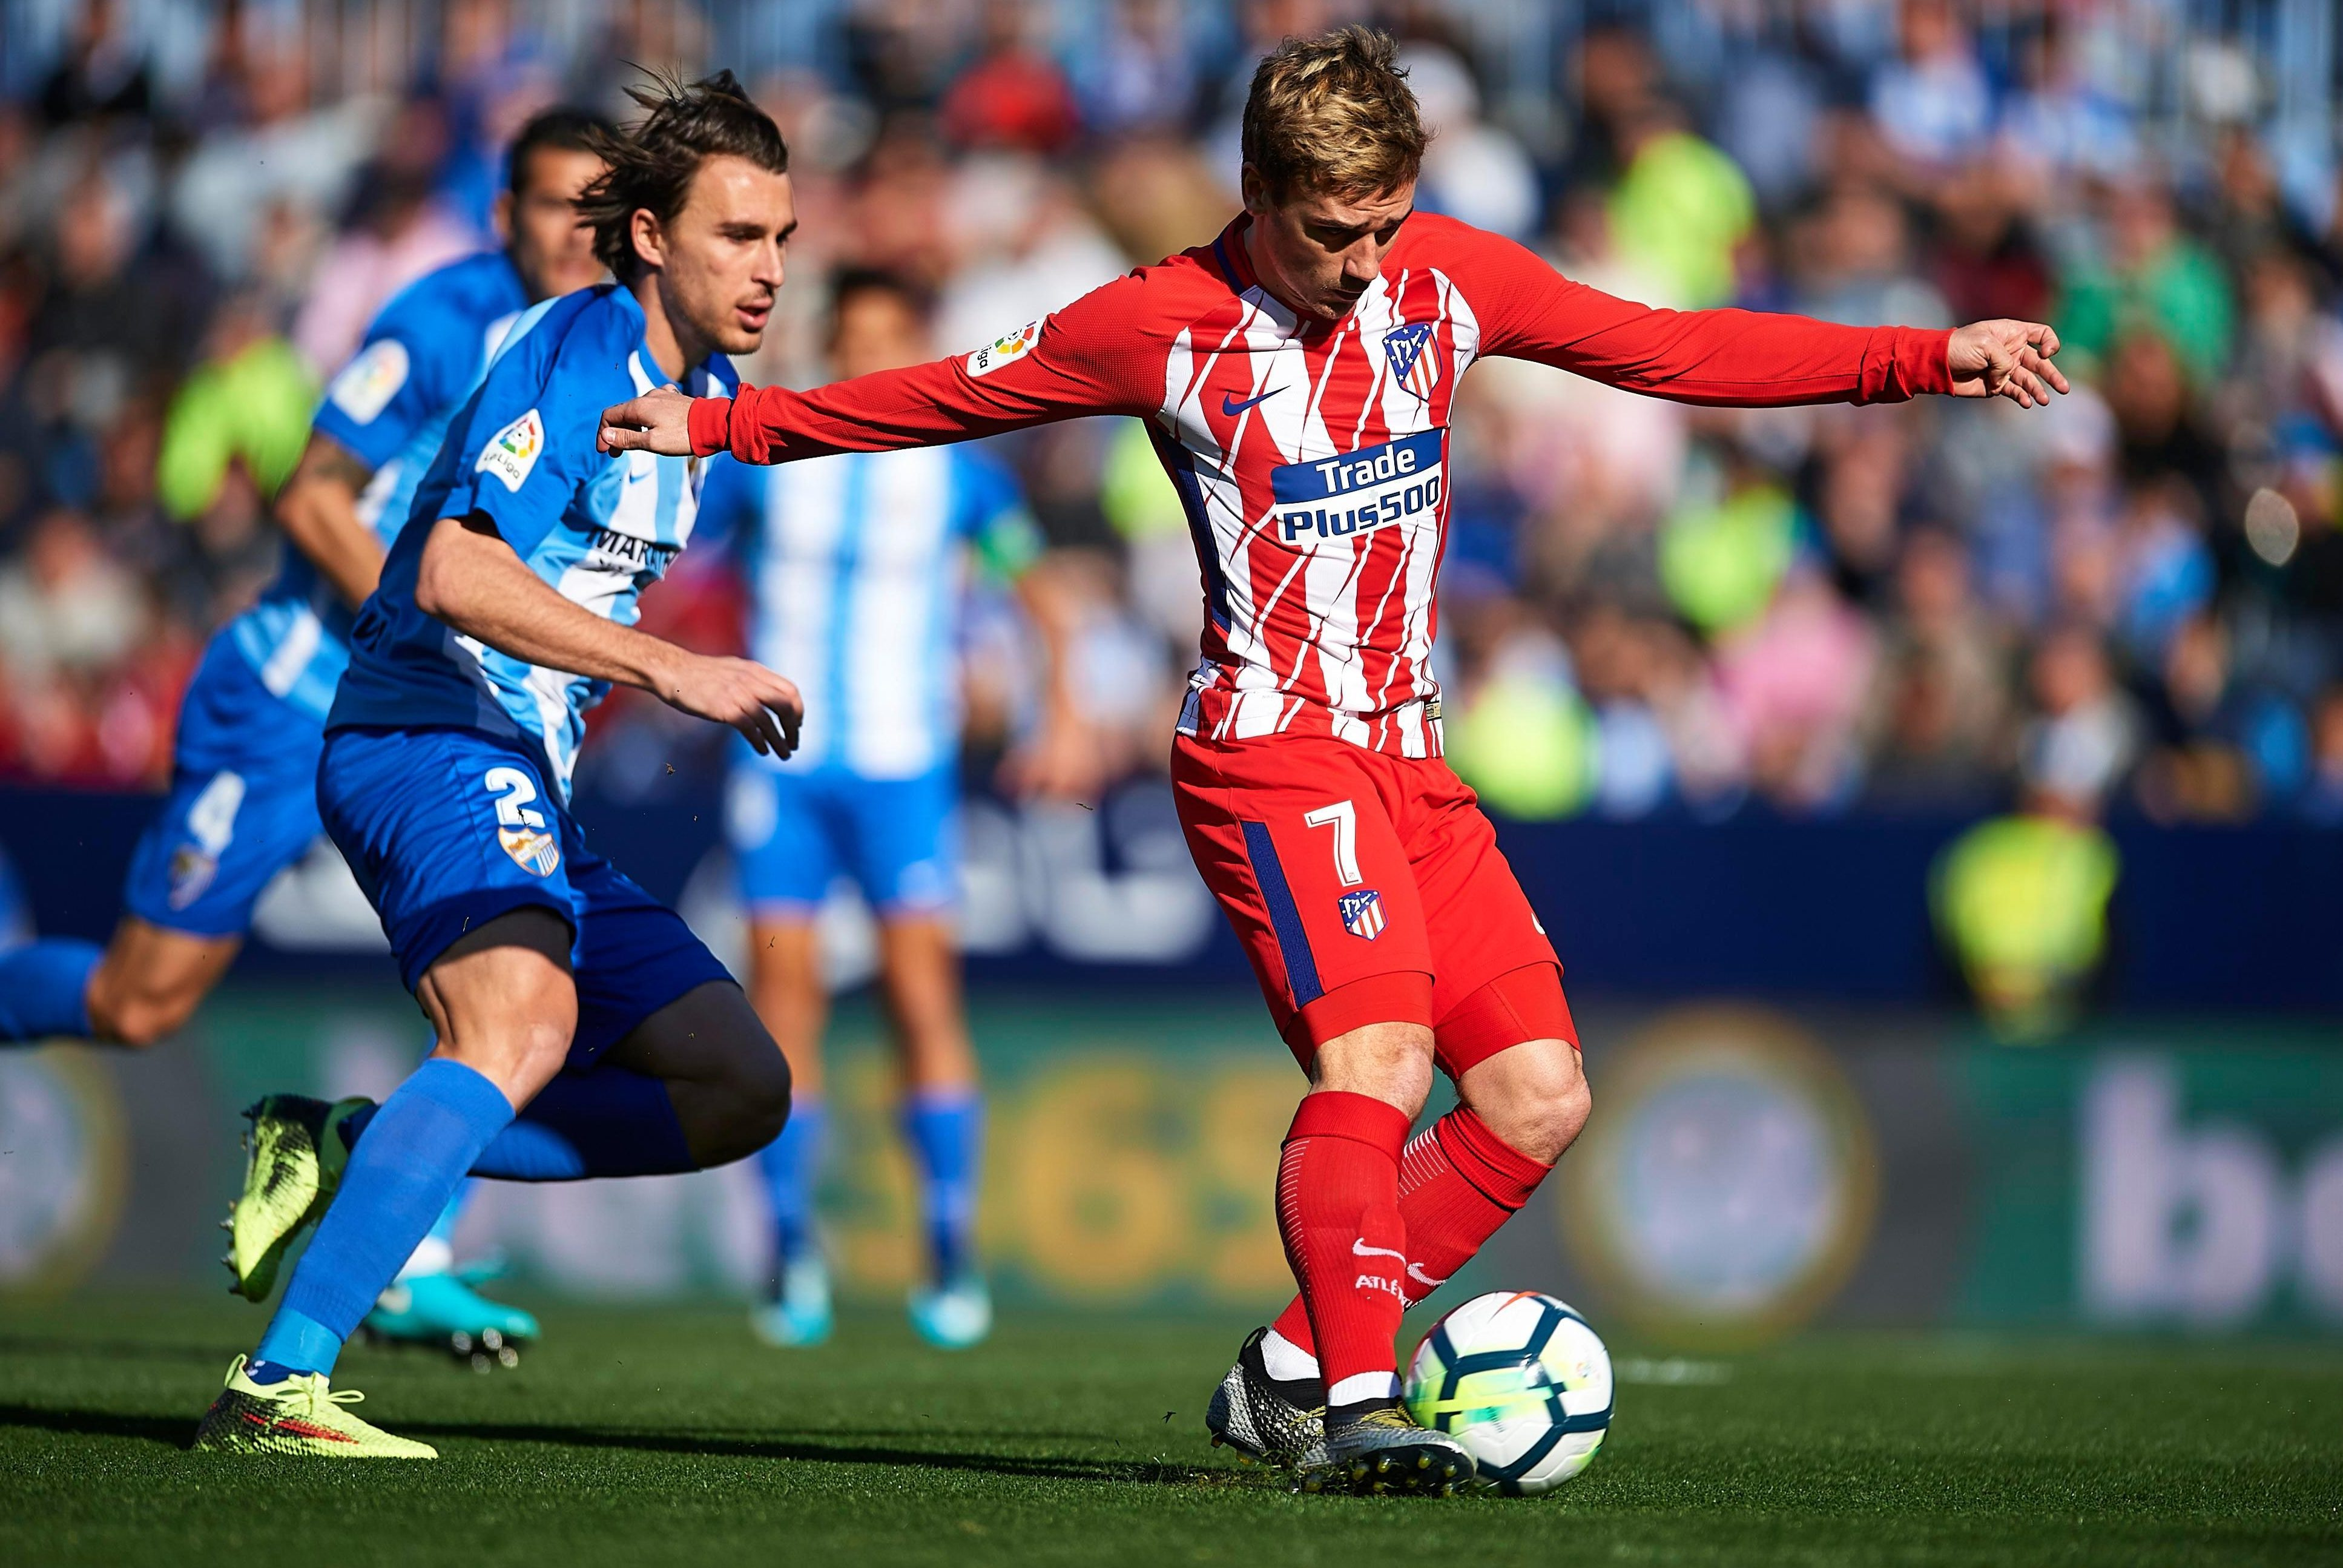 Malaga 0 Atletico Madrid 1: Antoine Griezmann nets winner after just 40 SECONDS as Diego Simeone's men close gap on Barcelona